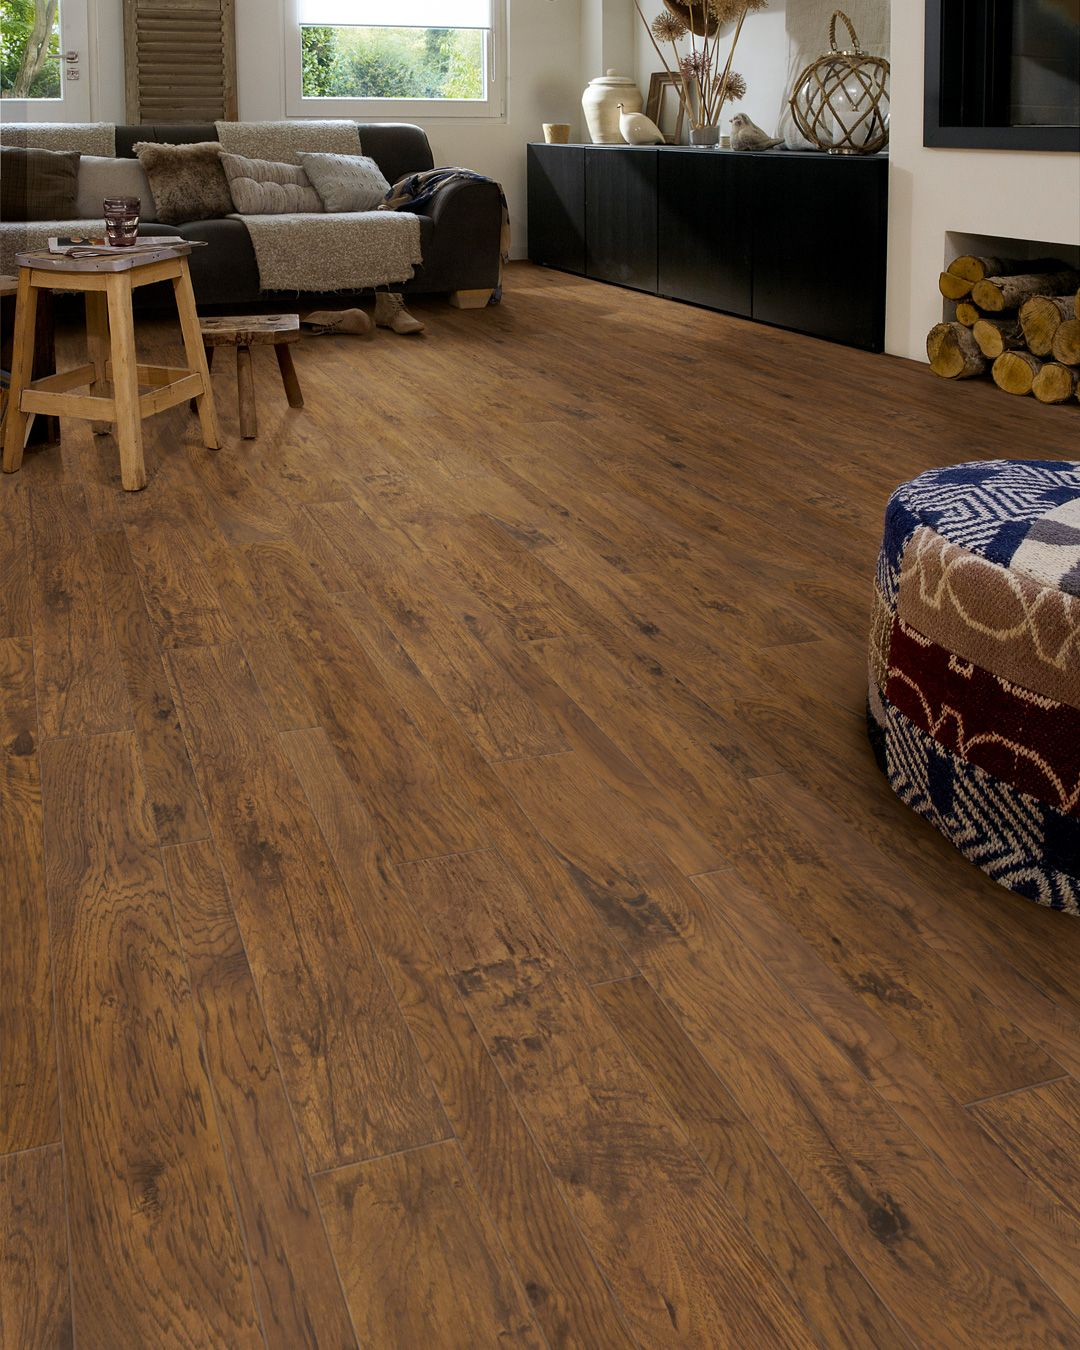 Tarkett Laminate Flooring incredible tarkett laminate flooring tarkett laminate vintage pine antique laminate flooring Tarkett Fresh Air 35030117181 Gold